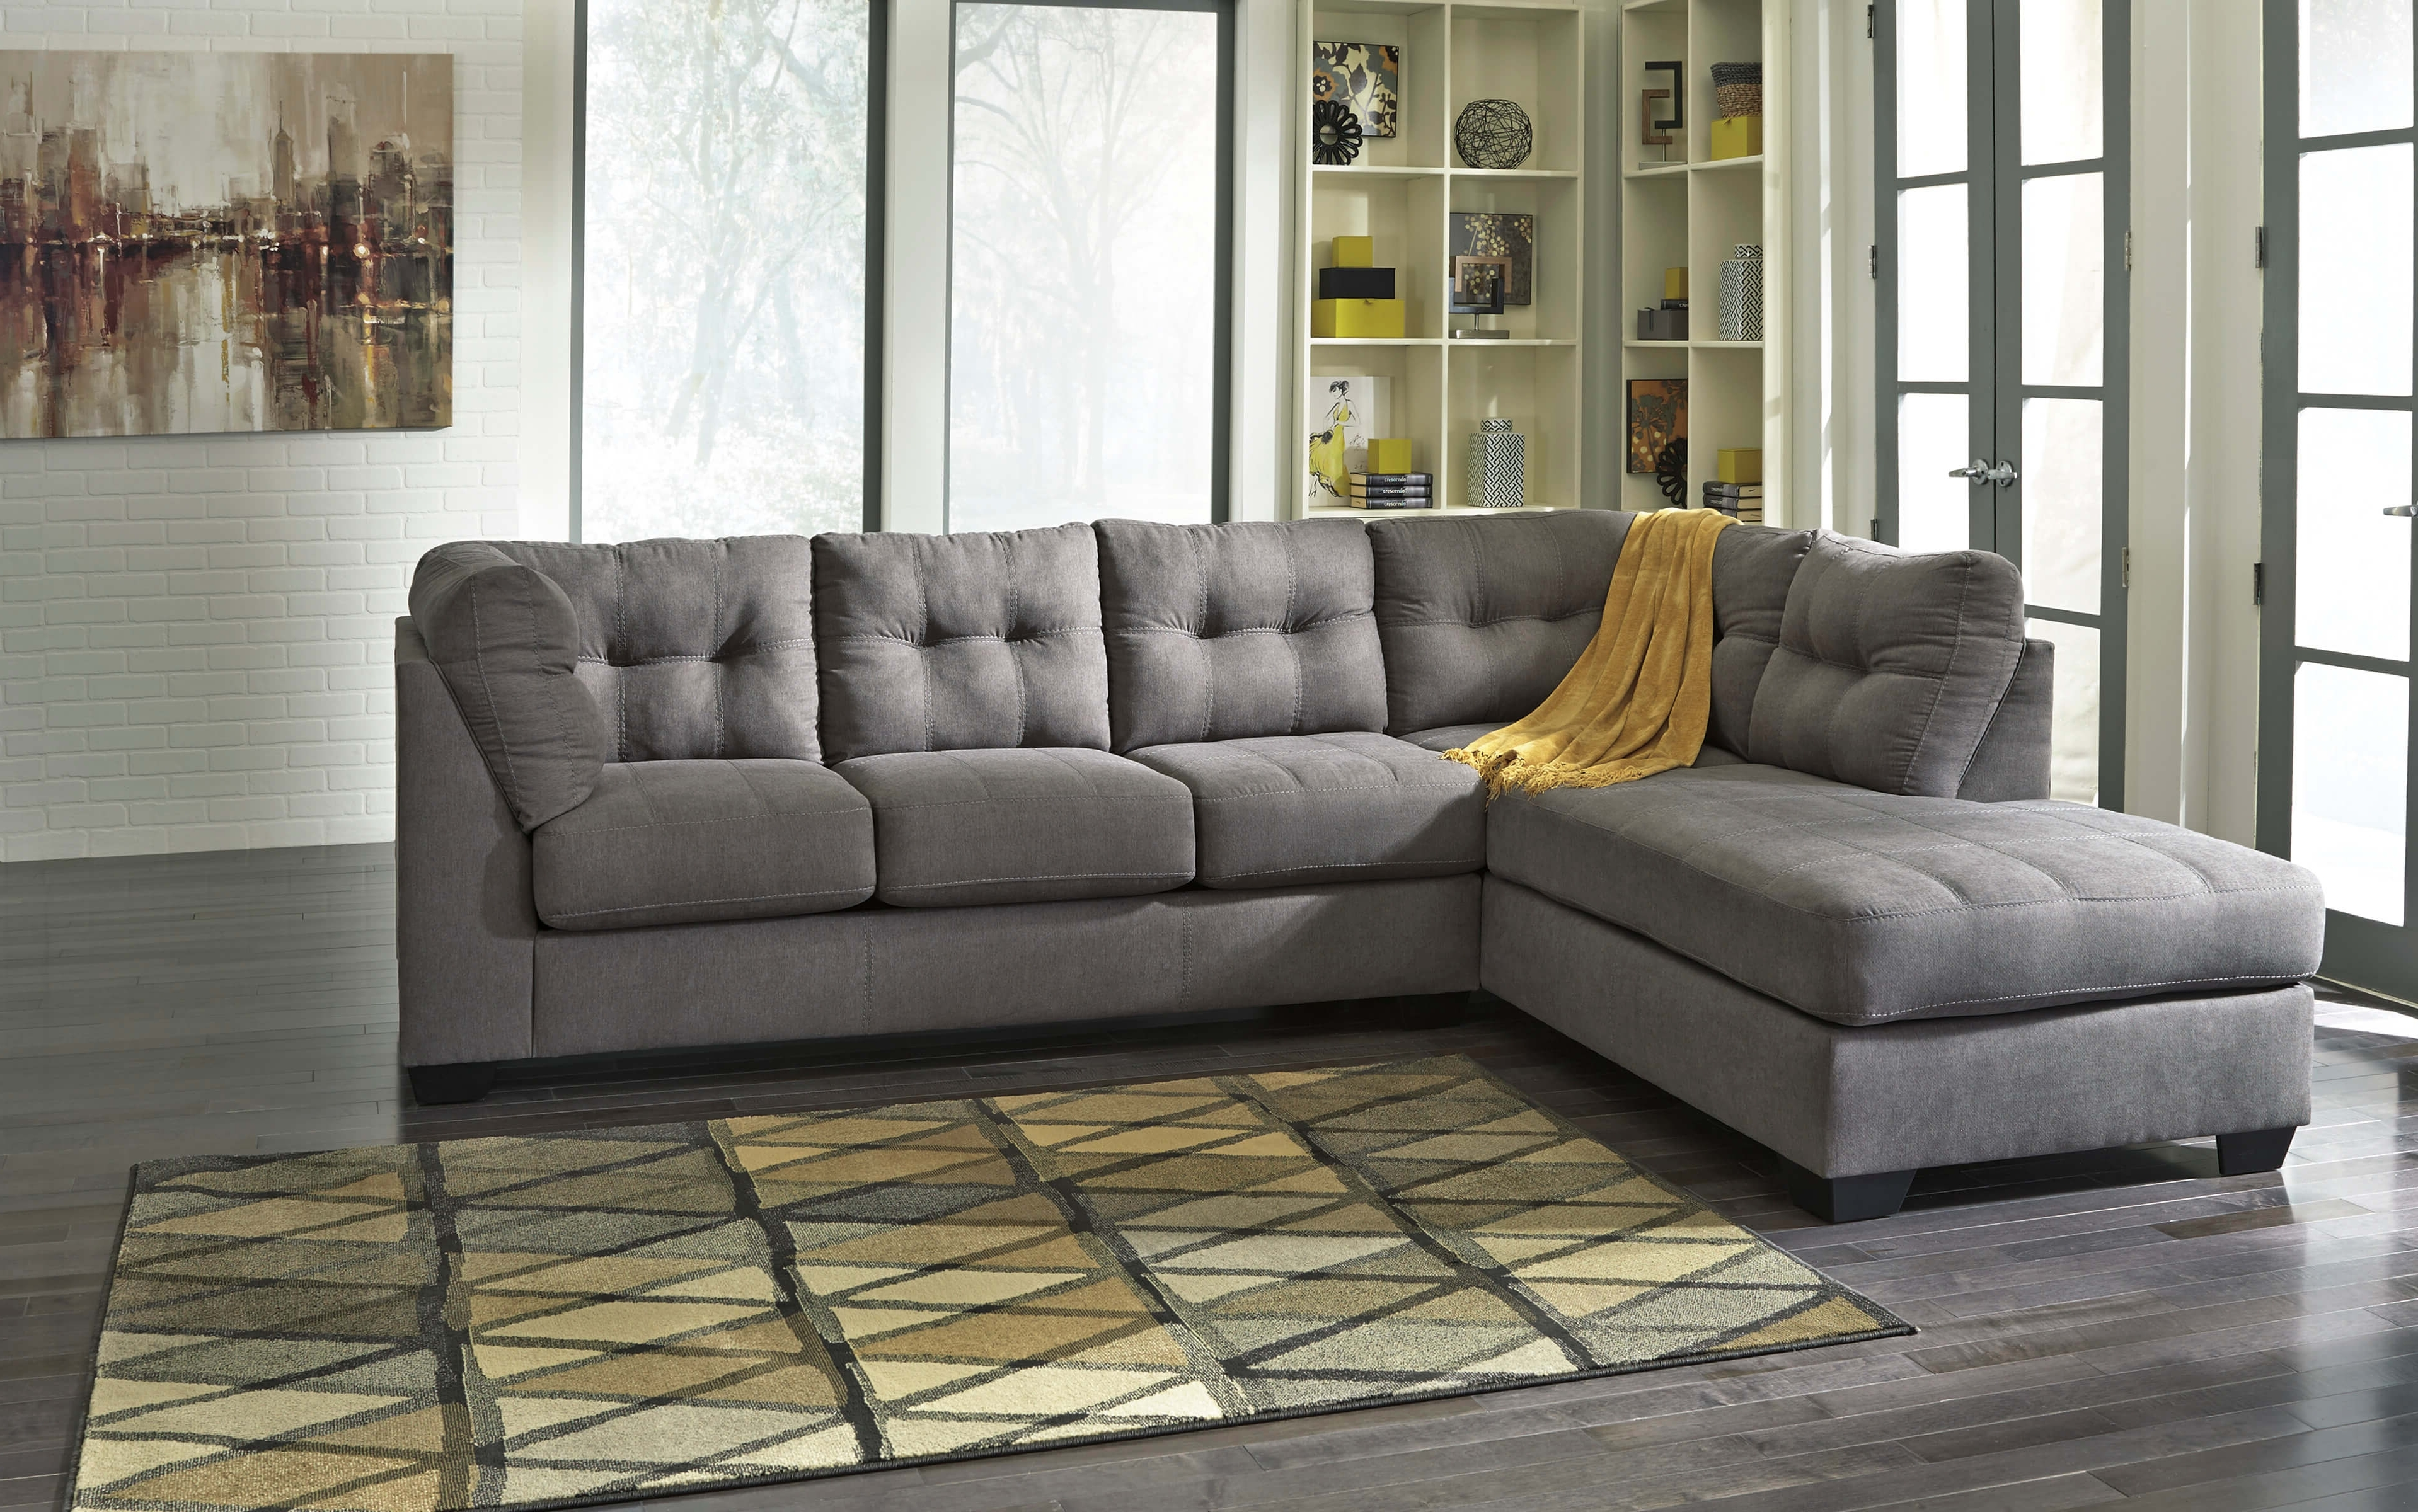 Fashionable Nebraska Furniture Mart Loveseats Mrs B's Clearance Discount In Kanes Sectional Sofas (View 3 of 15)